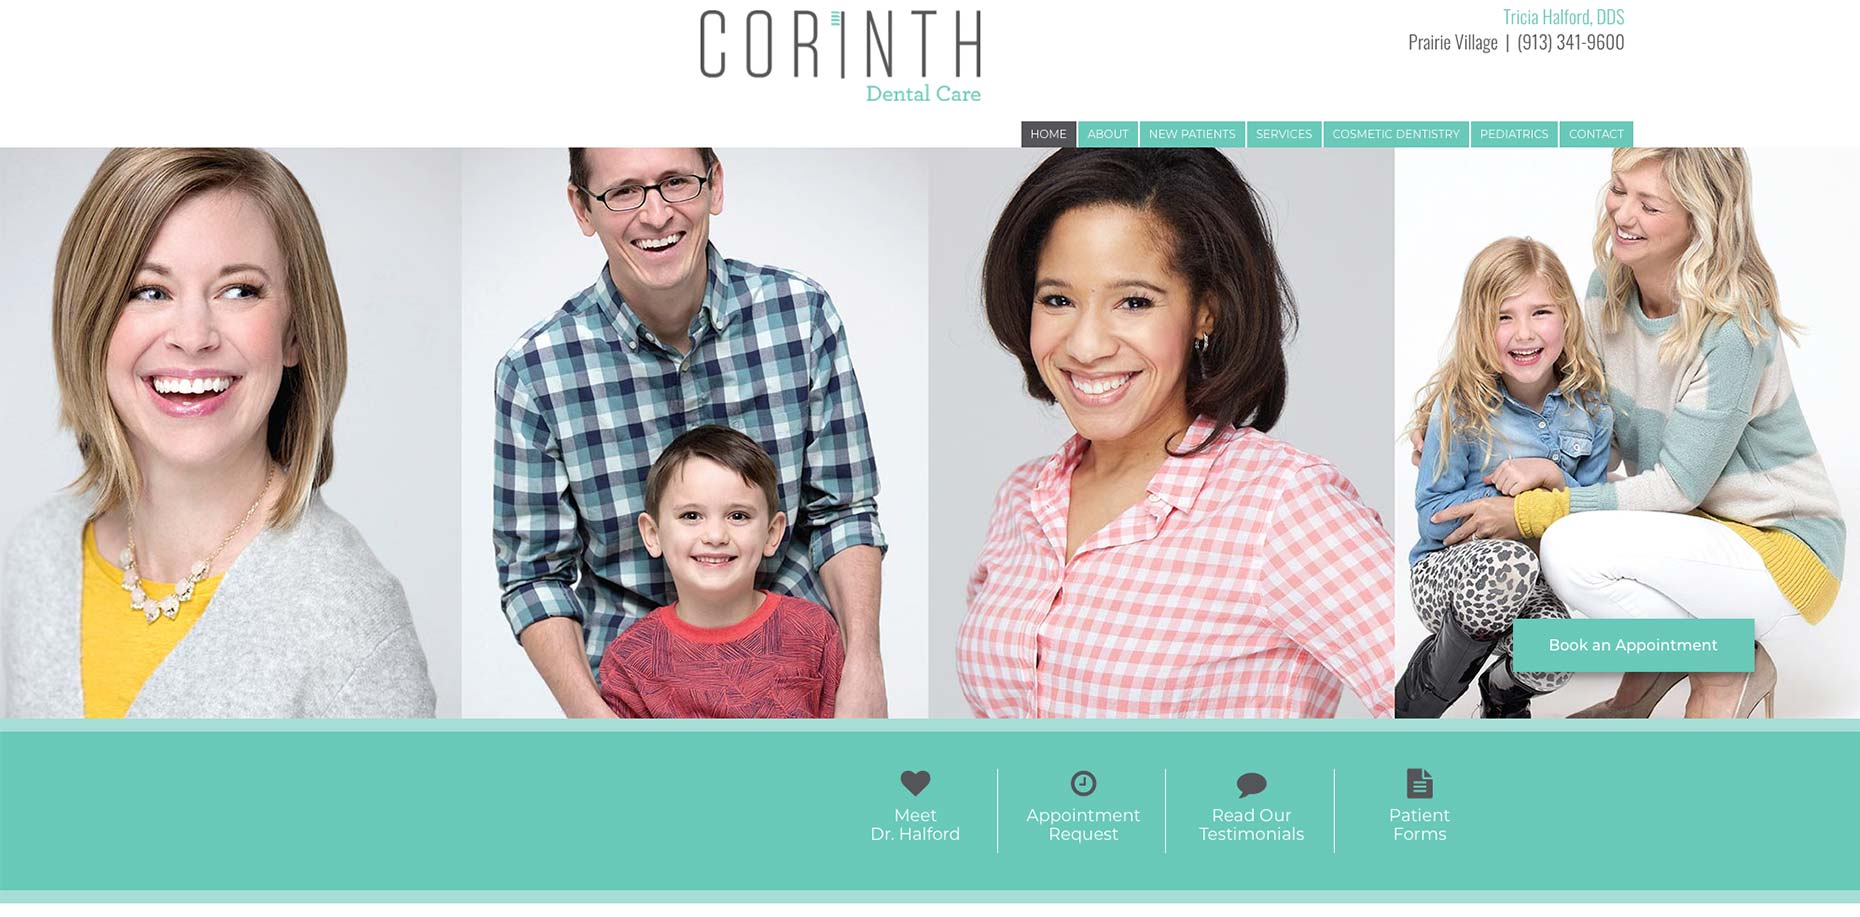 cornith-website-01